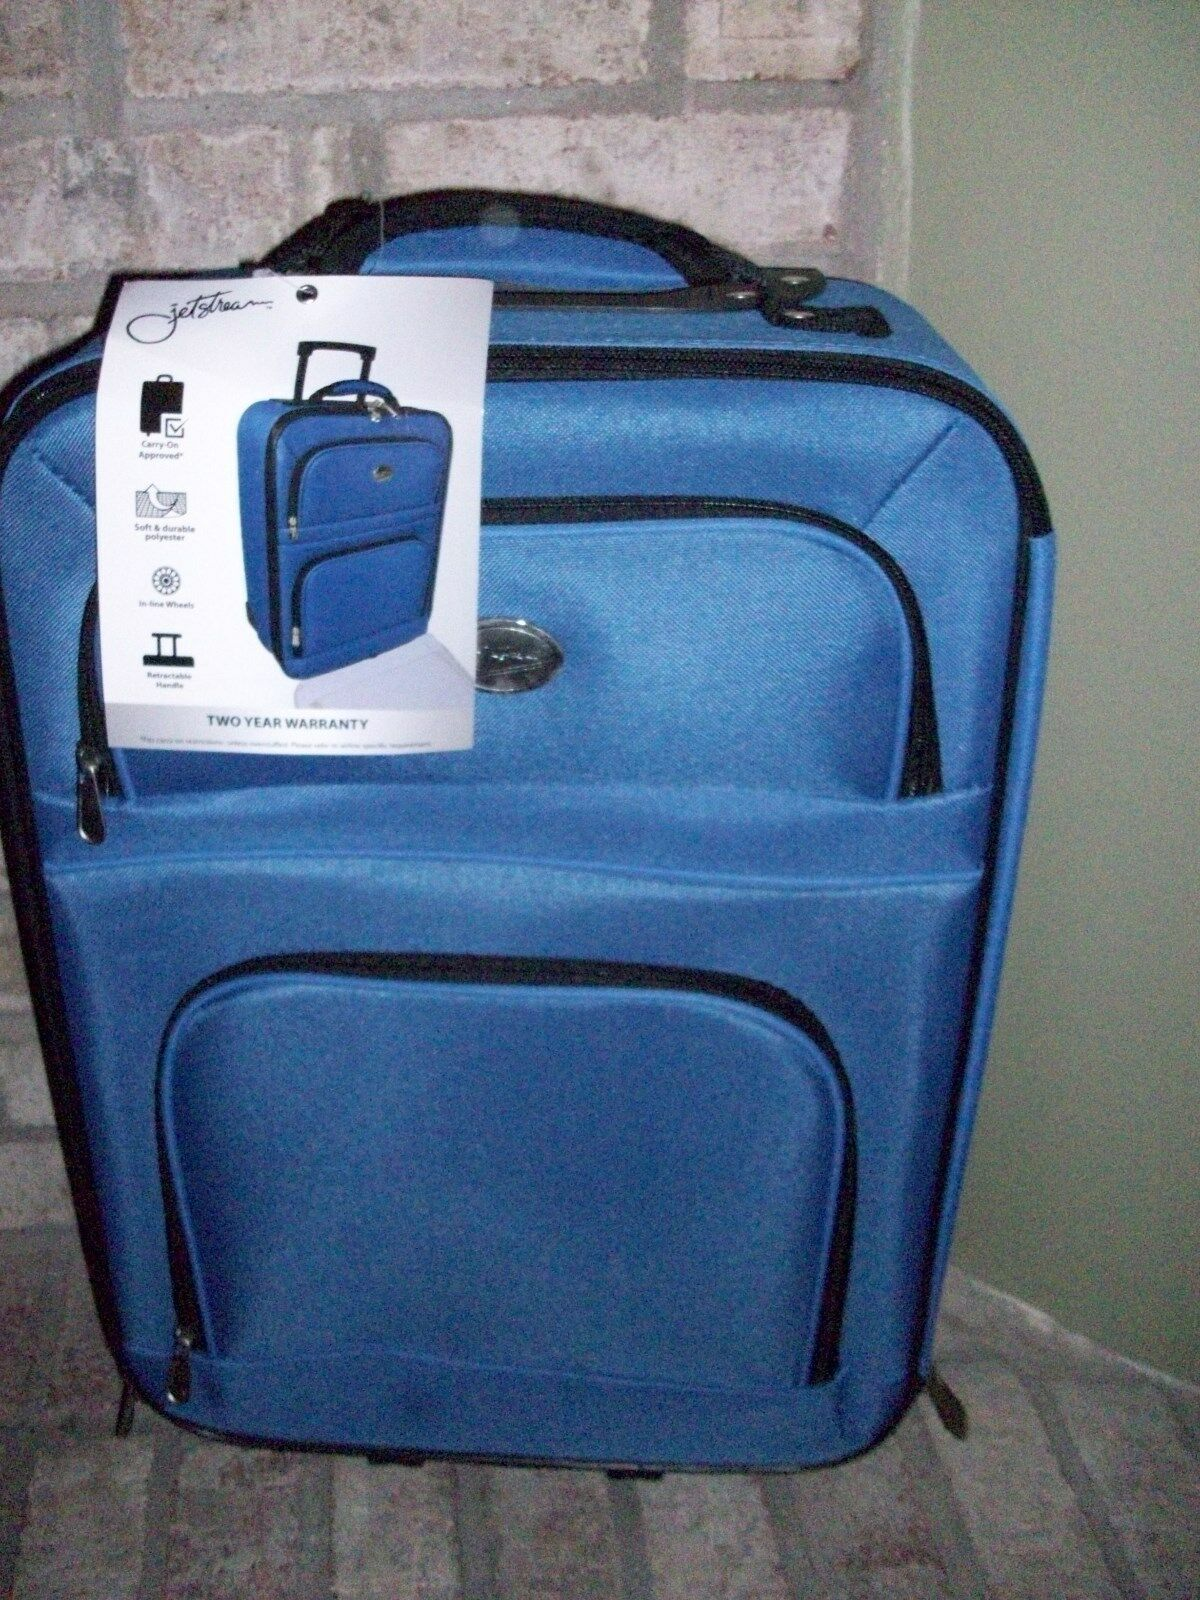 Jetstream 20 Inch Lightweight Luggage Softside Carry On Suitcase Blue  - $29.75